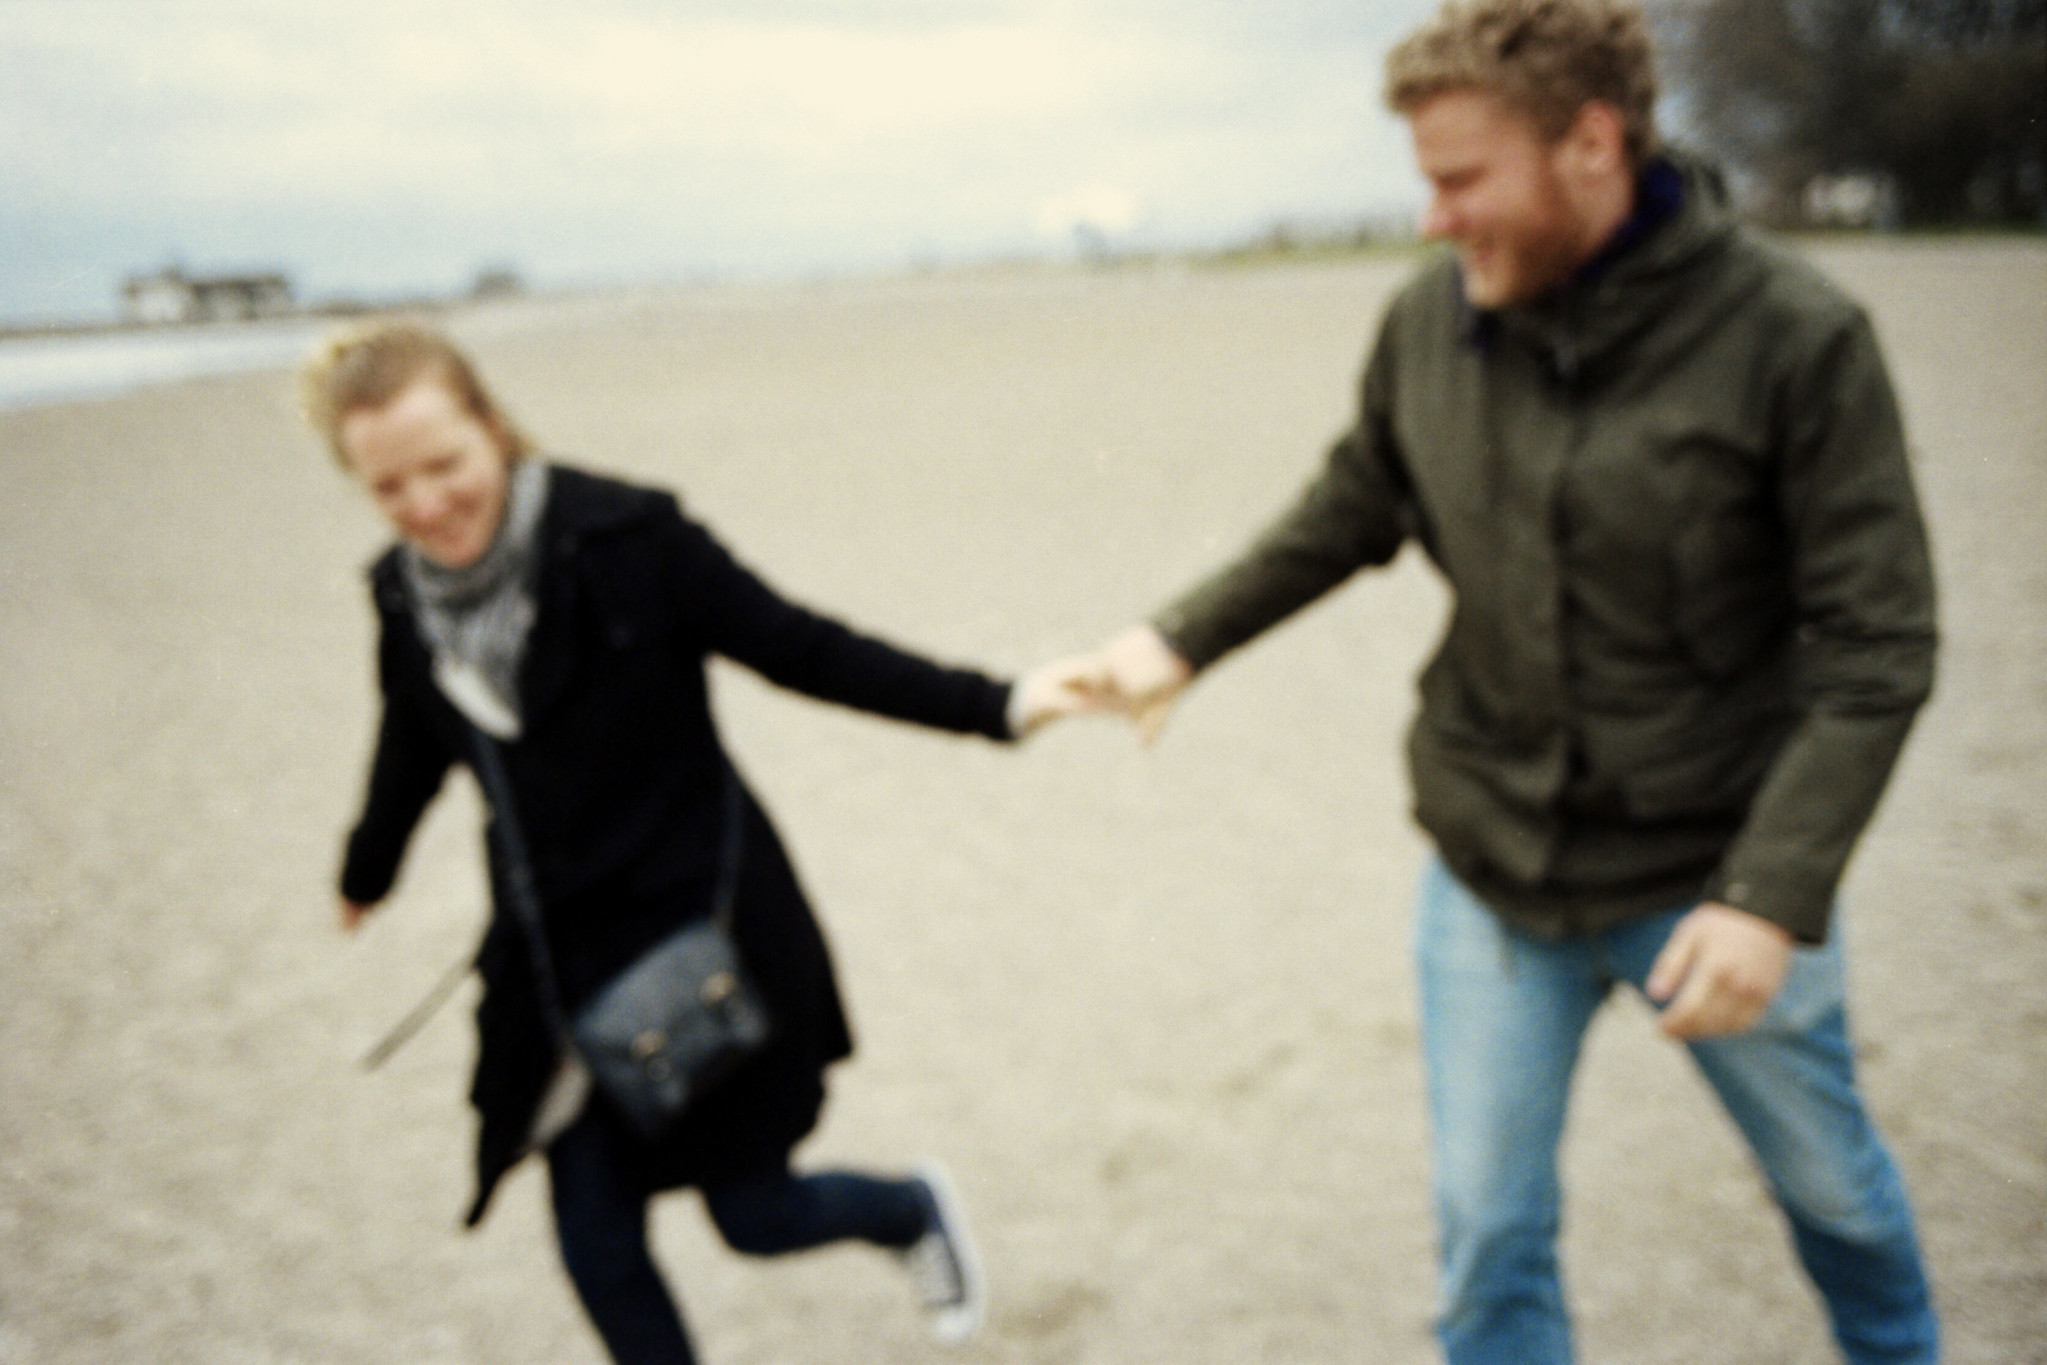 Le Love Blog Couple Running On The Beach I Survived Found New Love Two by Esben Bøg Jensen, on Flickr